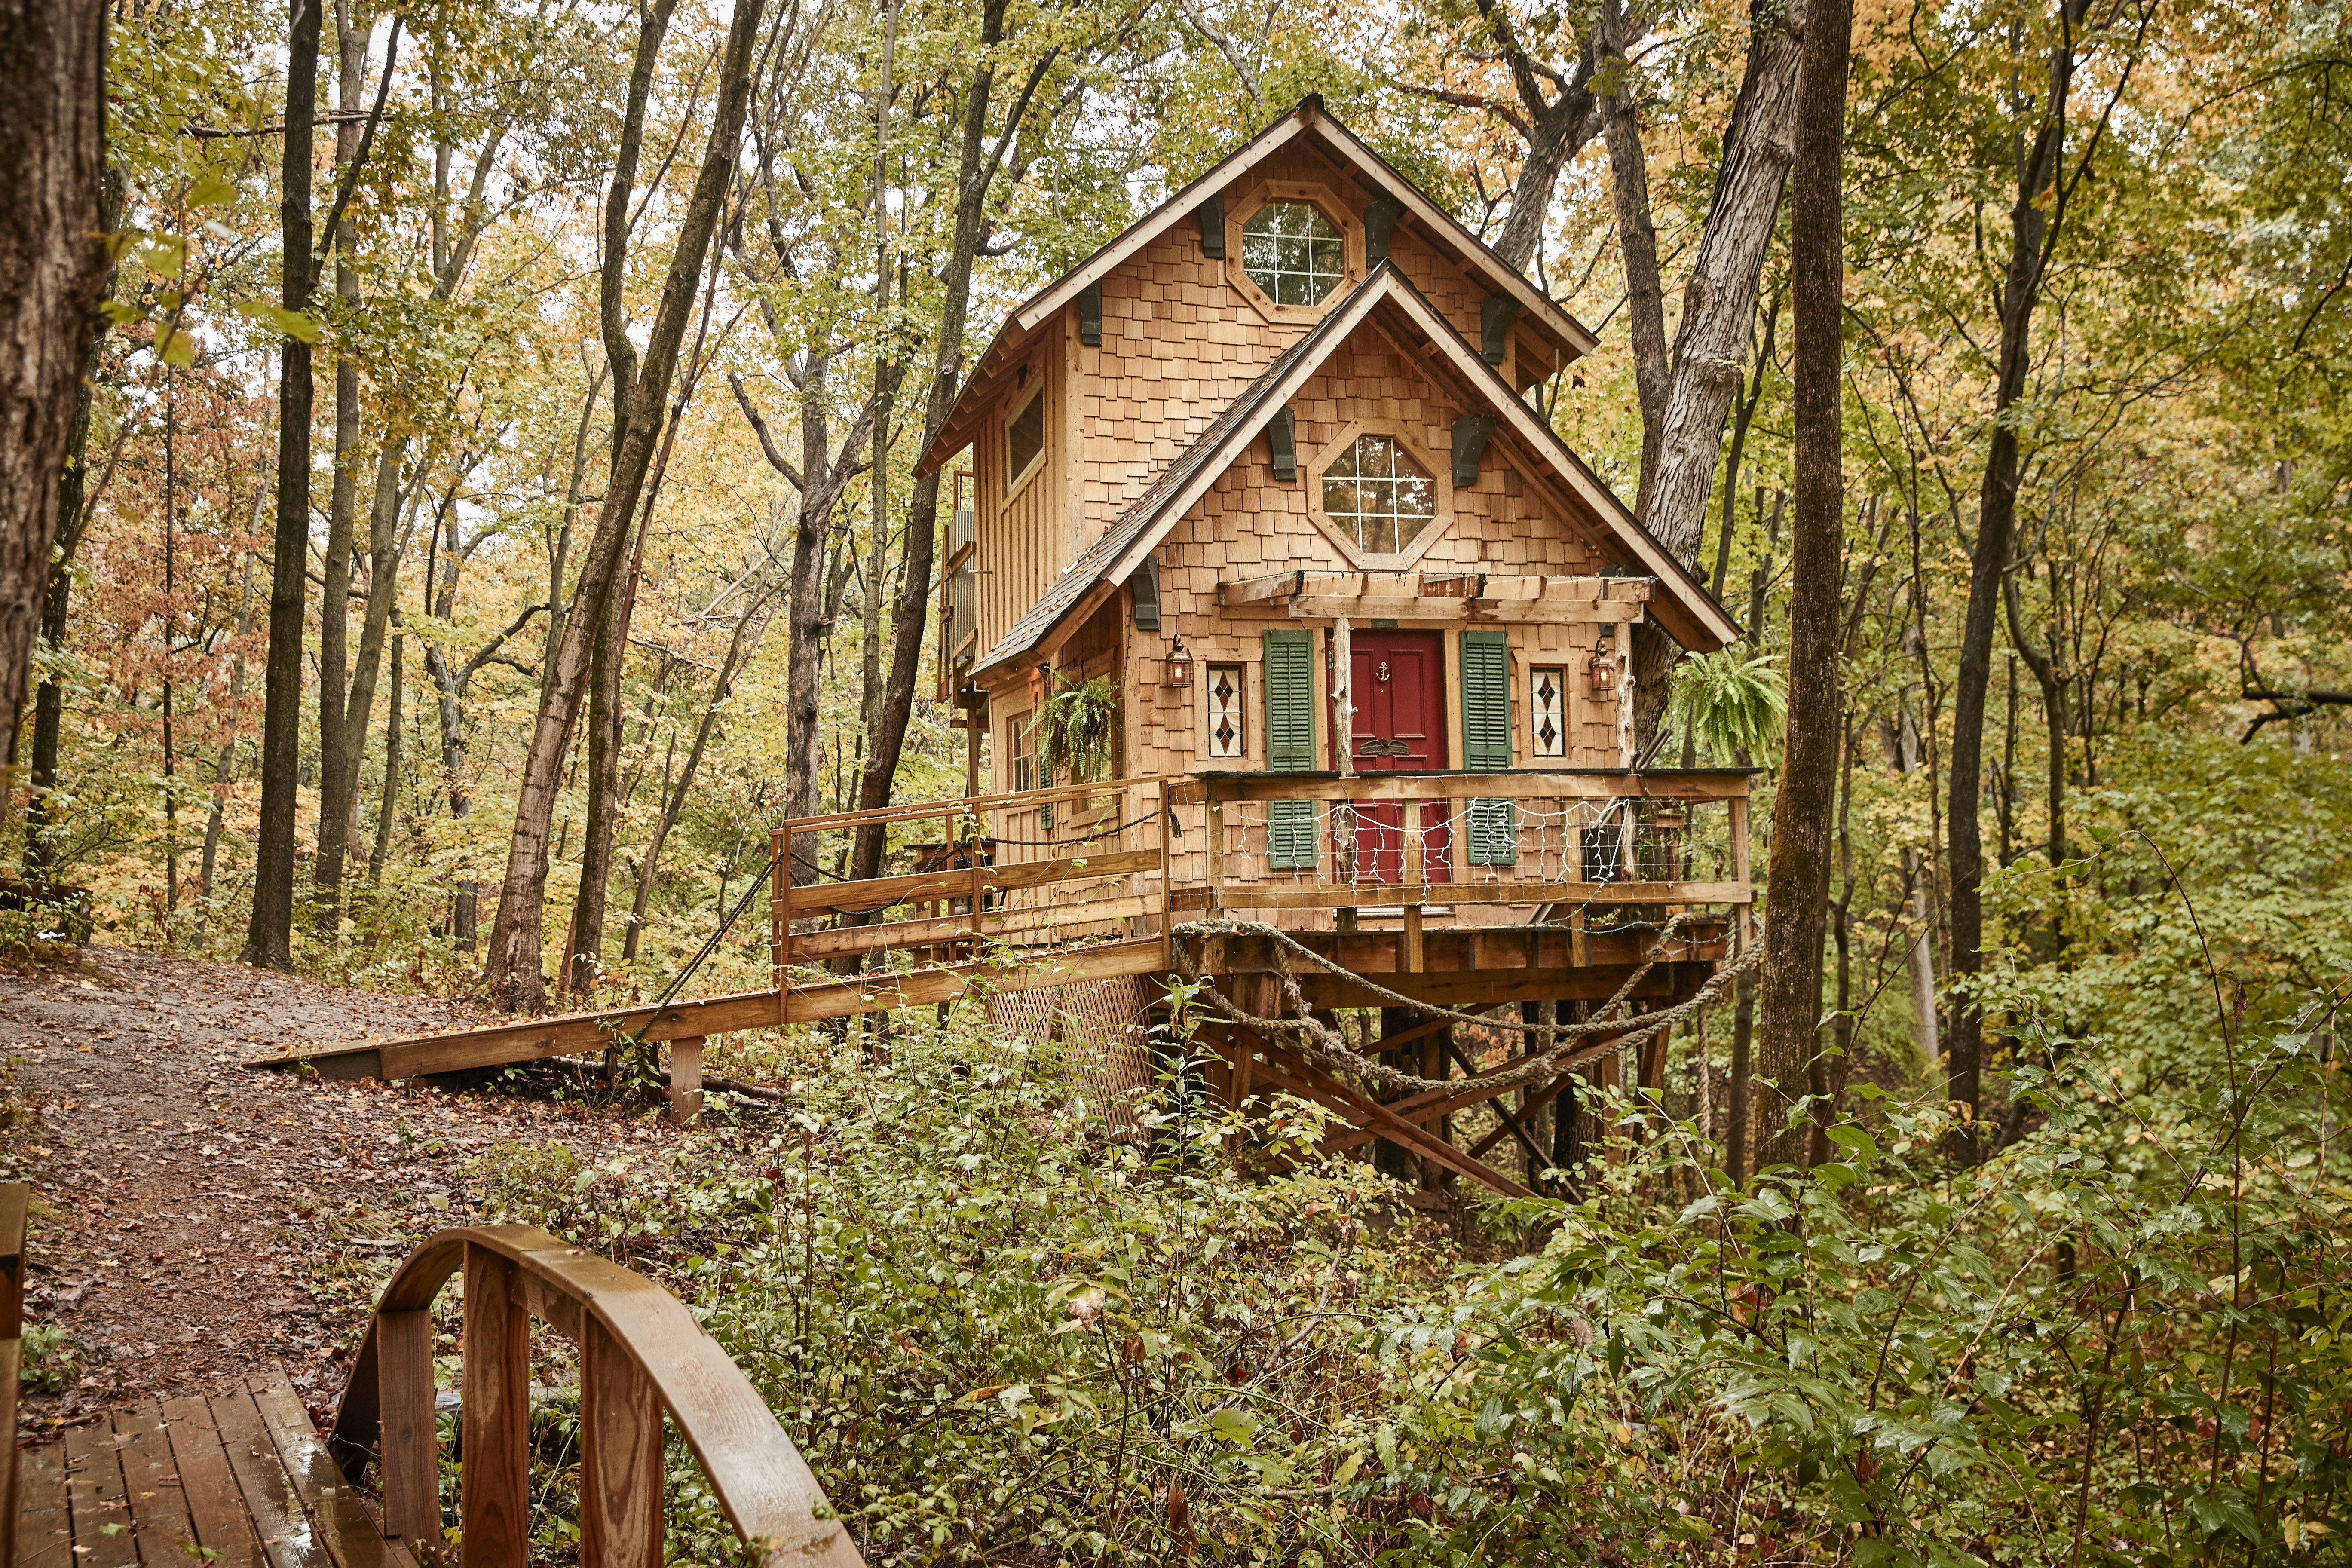 Quirky Places to Stay in Illinois